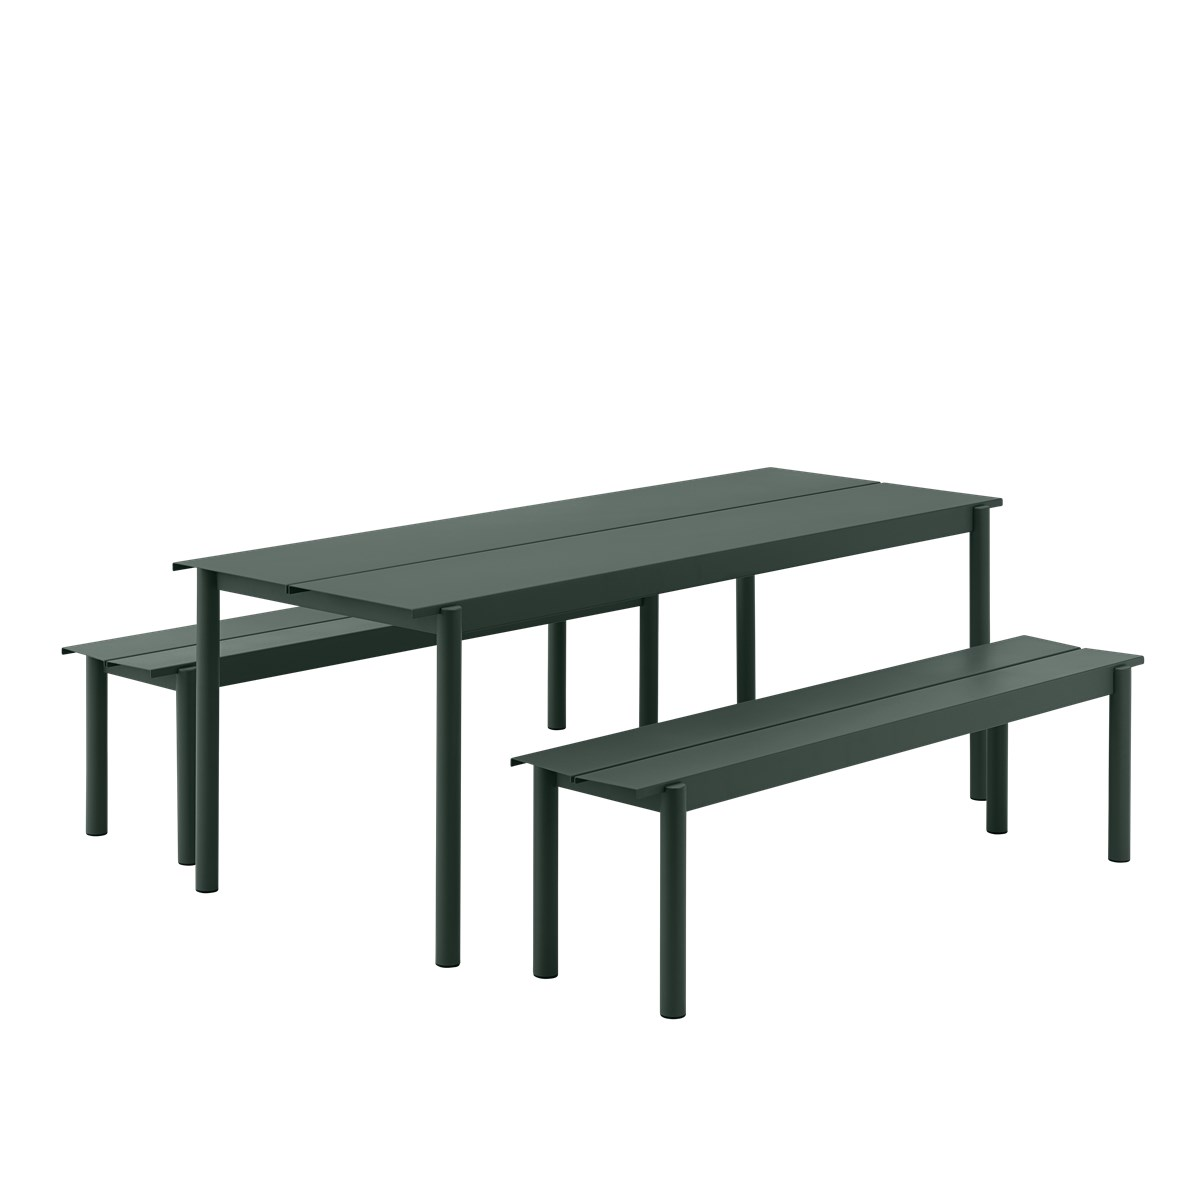 Linear-steel-outdoor-set-200x75-dark-green-Muuto-hi-res.jpg